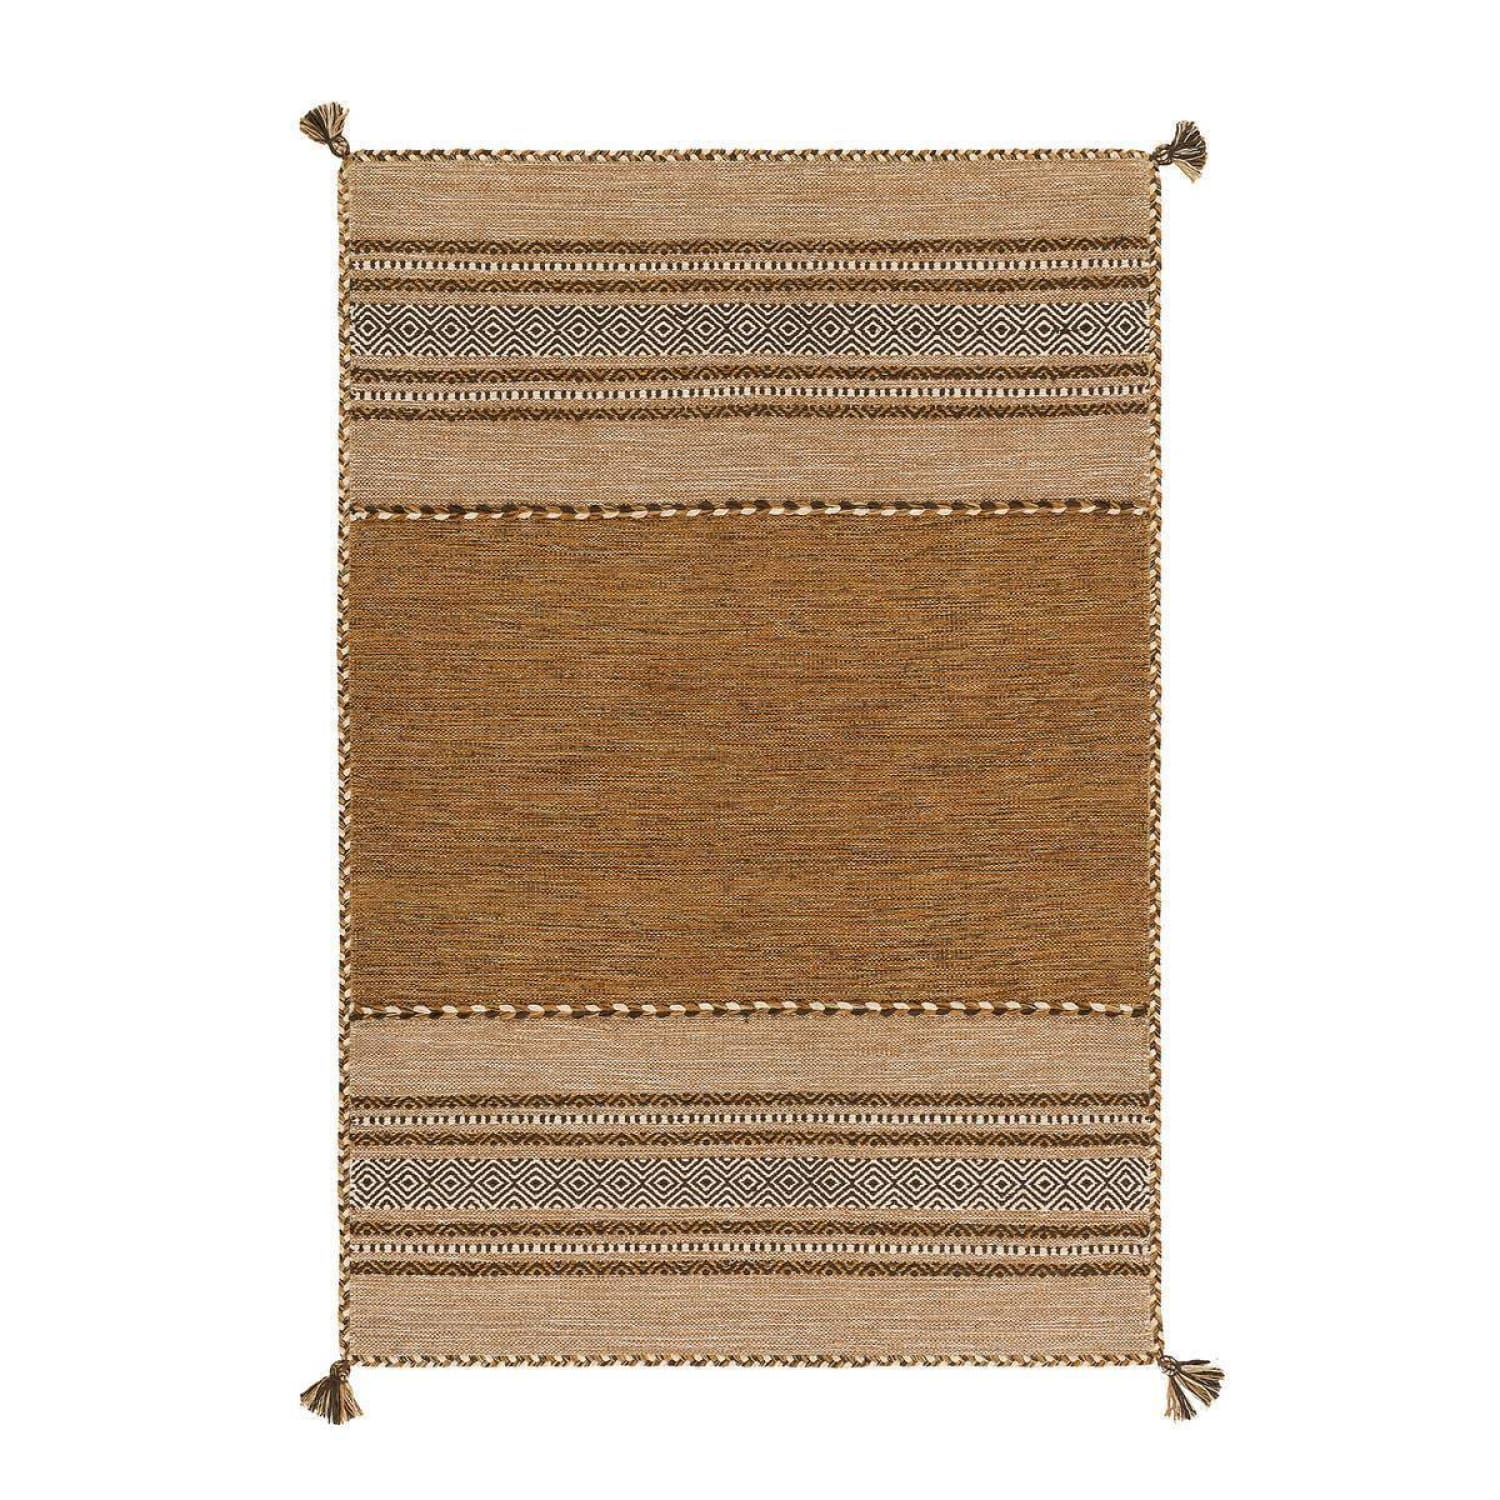 Tapis Traditionnel Navarro 2921 Marron